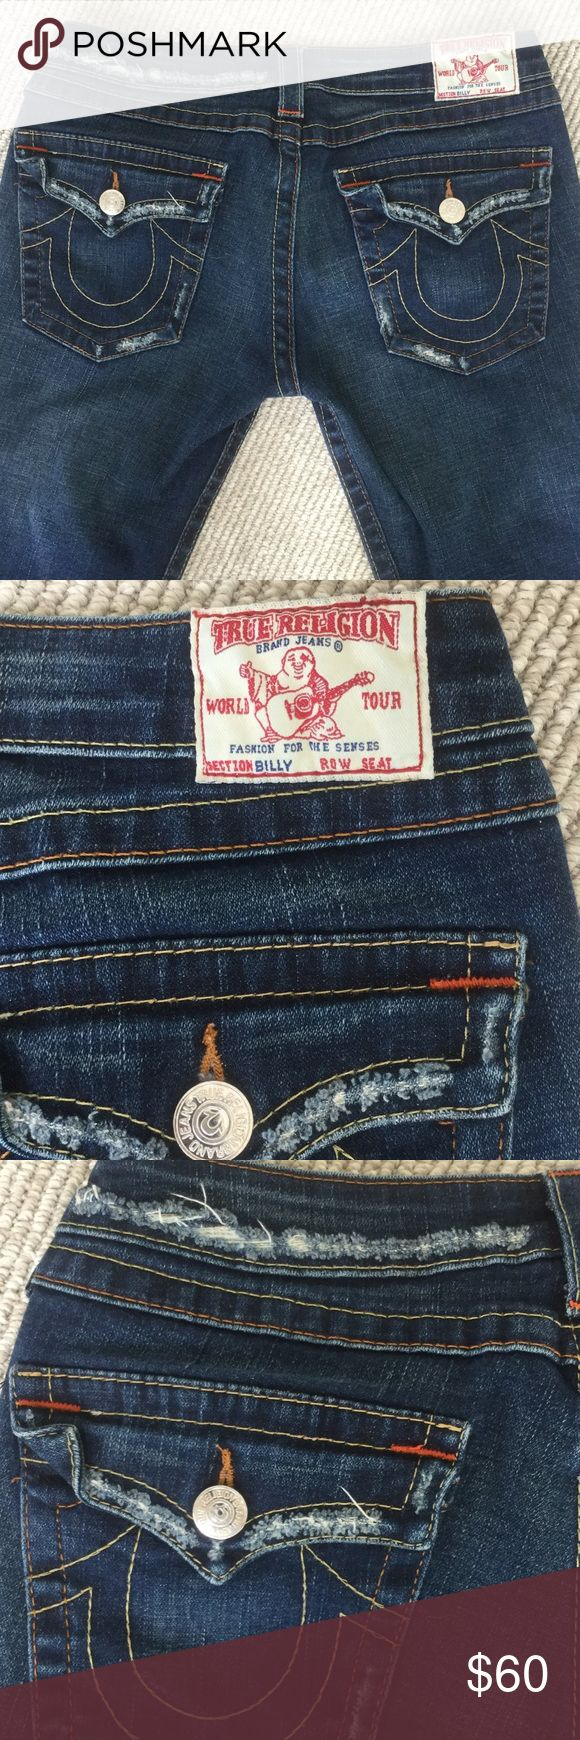 True Religion dark wash straight leg Billy size 30 These jeans are awesome! I just wish they still fit. Intentionally distressed on the waist, pockets and legs. Waist 30, length 32. If you need additional measurements, just ask! True Religion Jeans Straight Leg